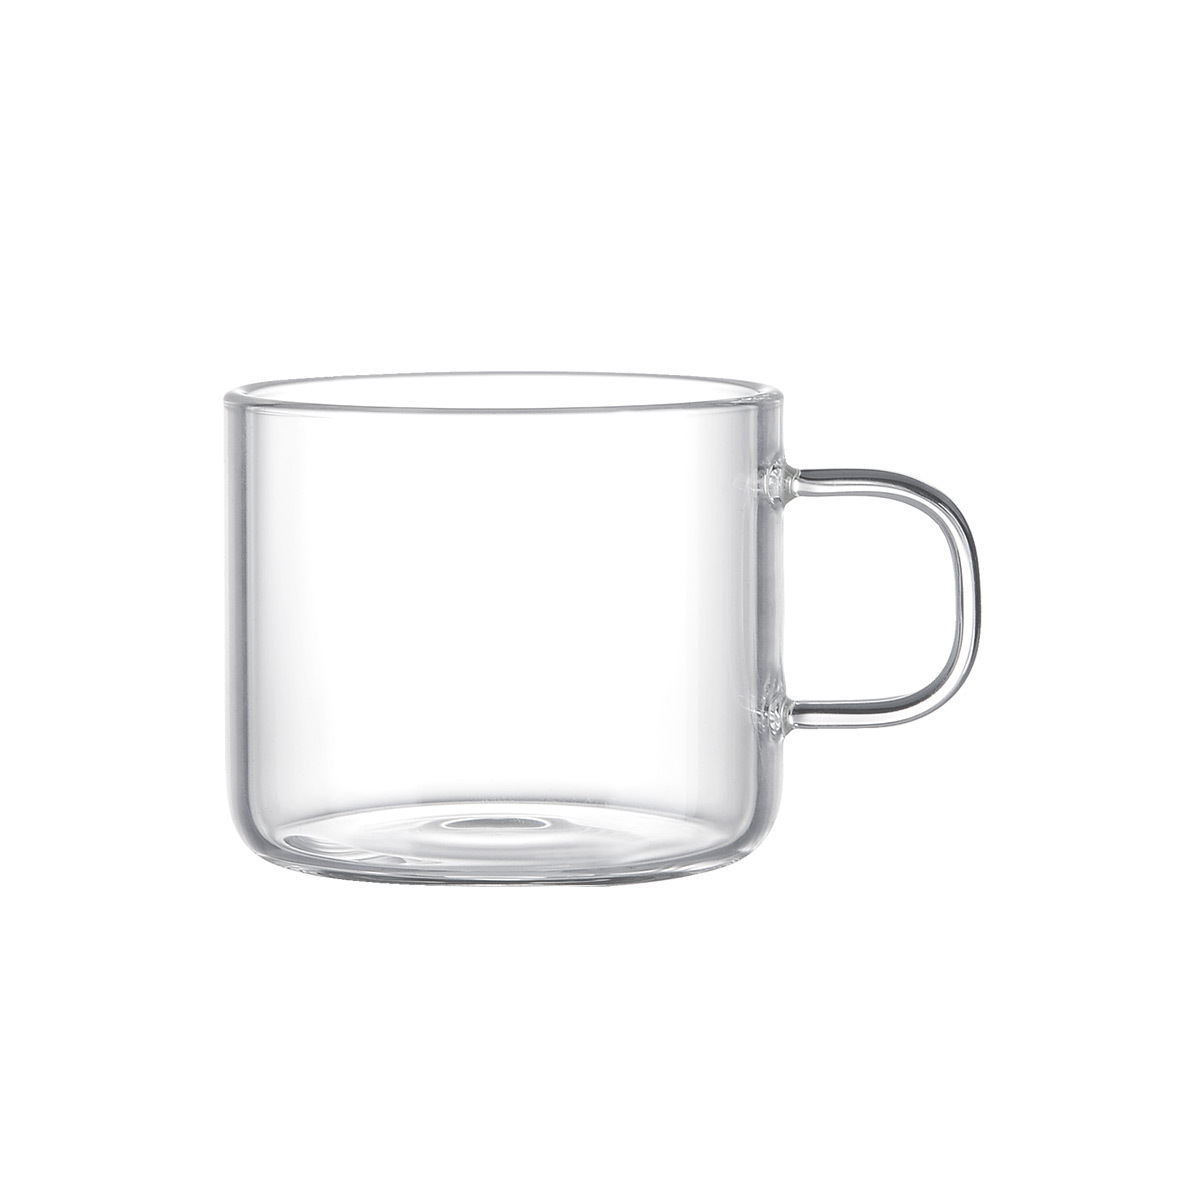 Halo Borosilicate Cup (Set of 2)